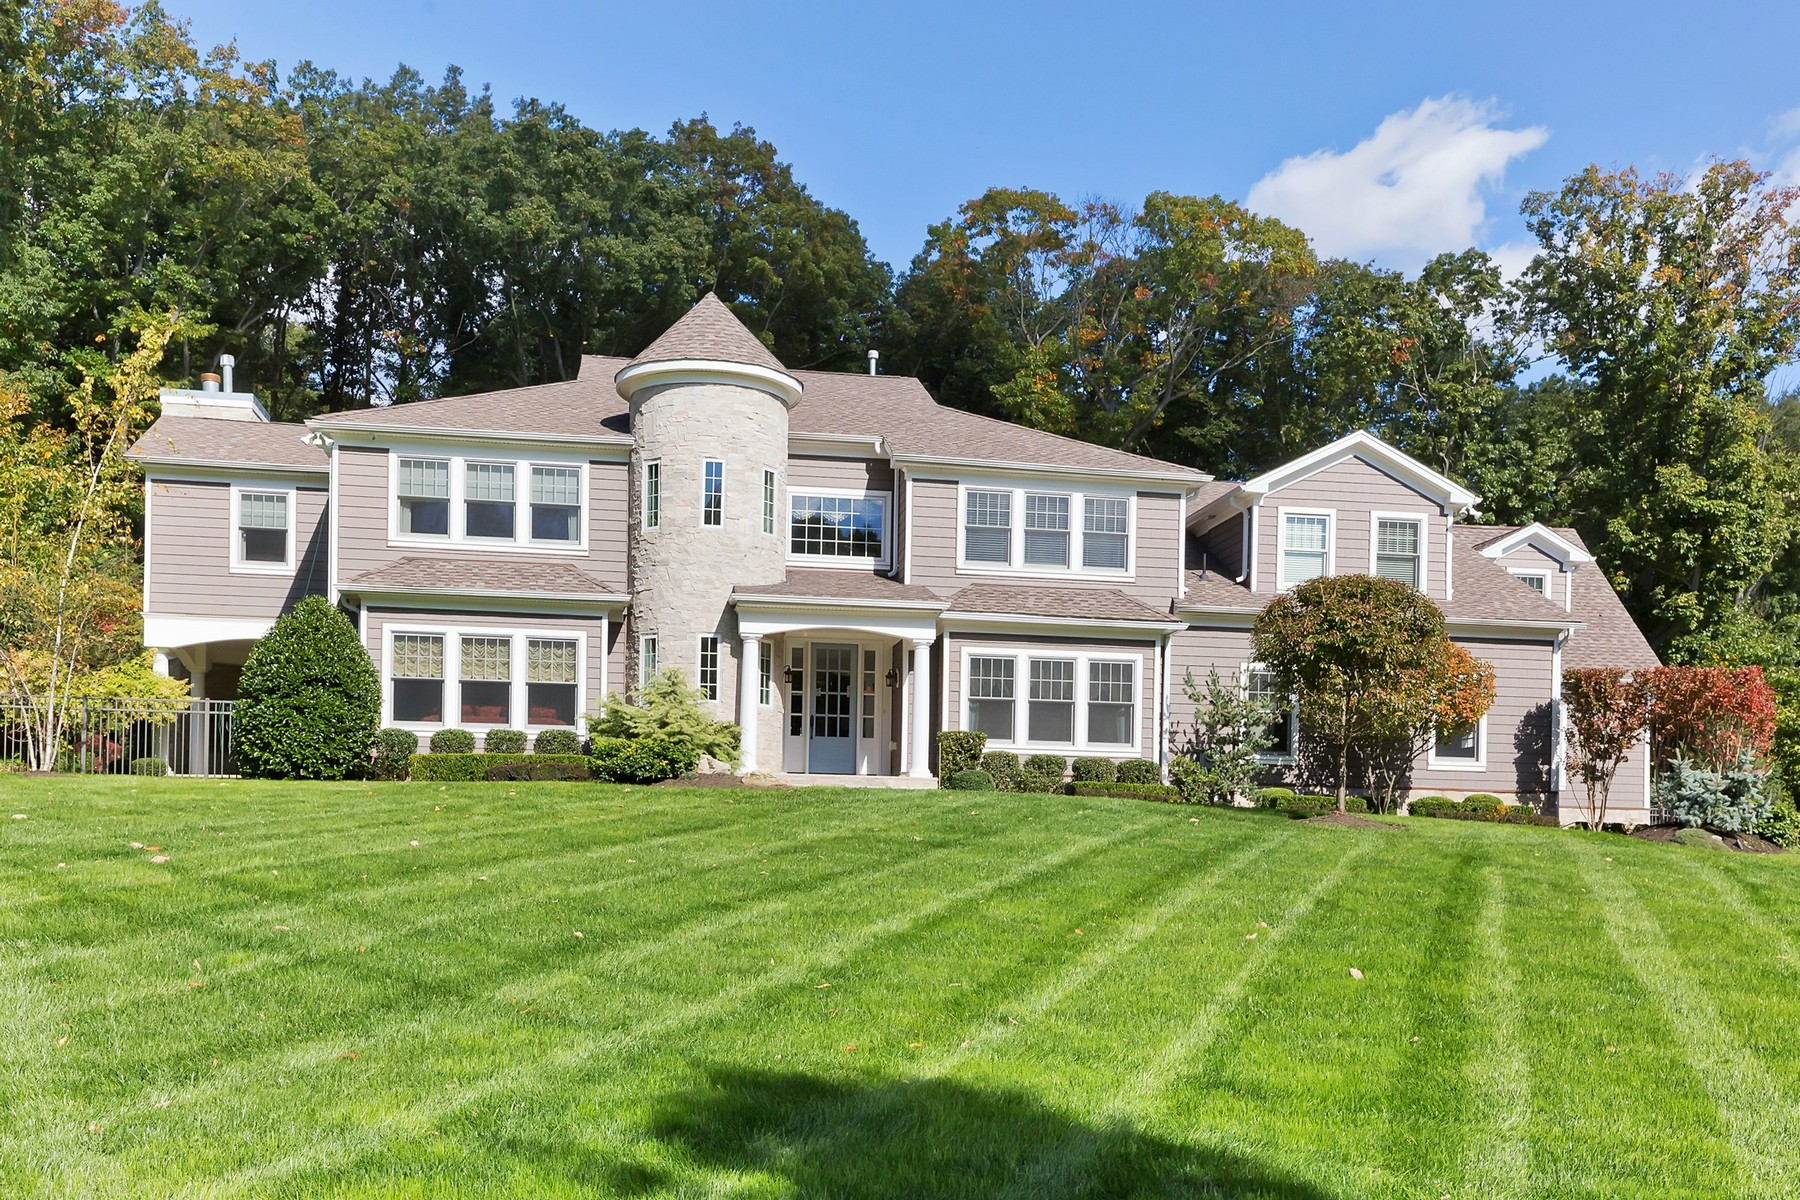 Single Family Home for Sale at Extraordinarily Sophisticated Custom Colonial 9 Withers Lane Middletown, New Jersey 07748 United States